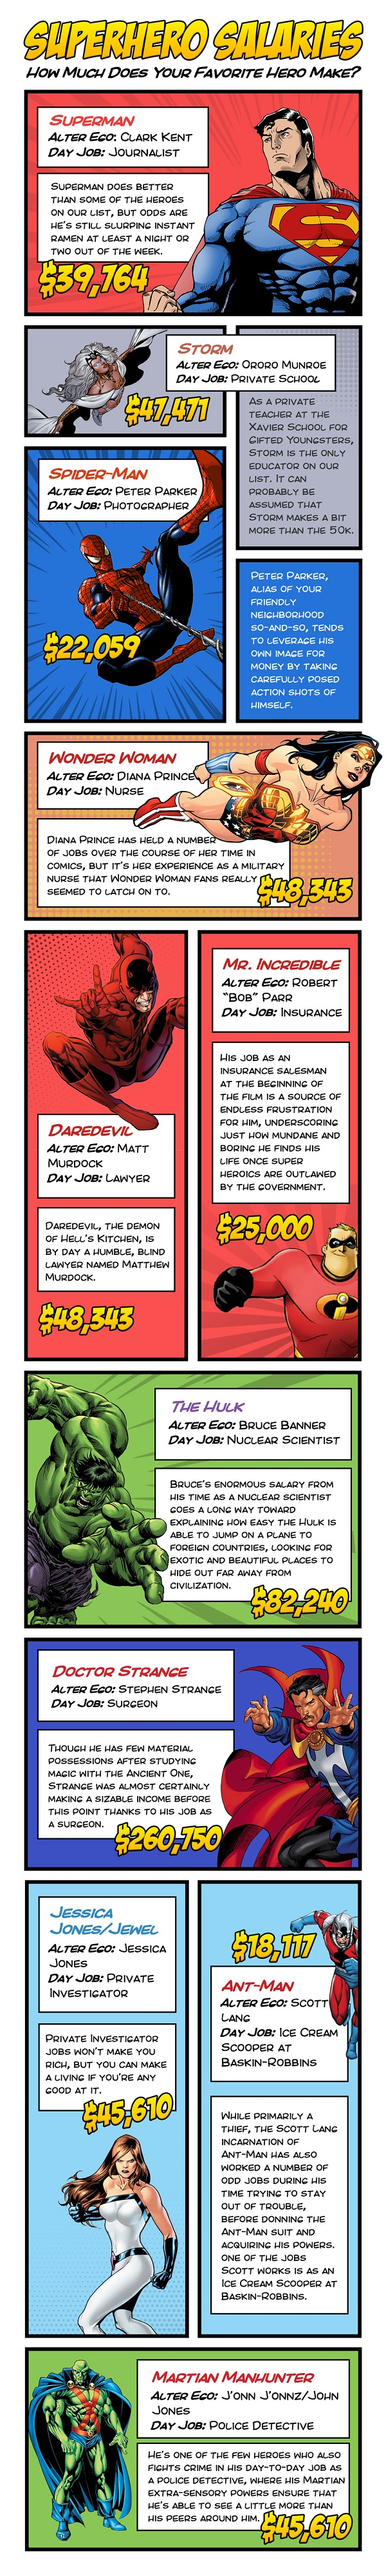 Super Hero Salaries Storygraphic